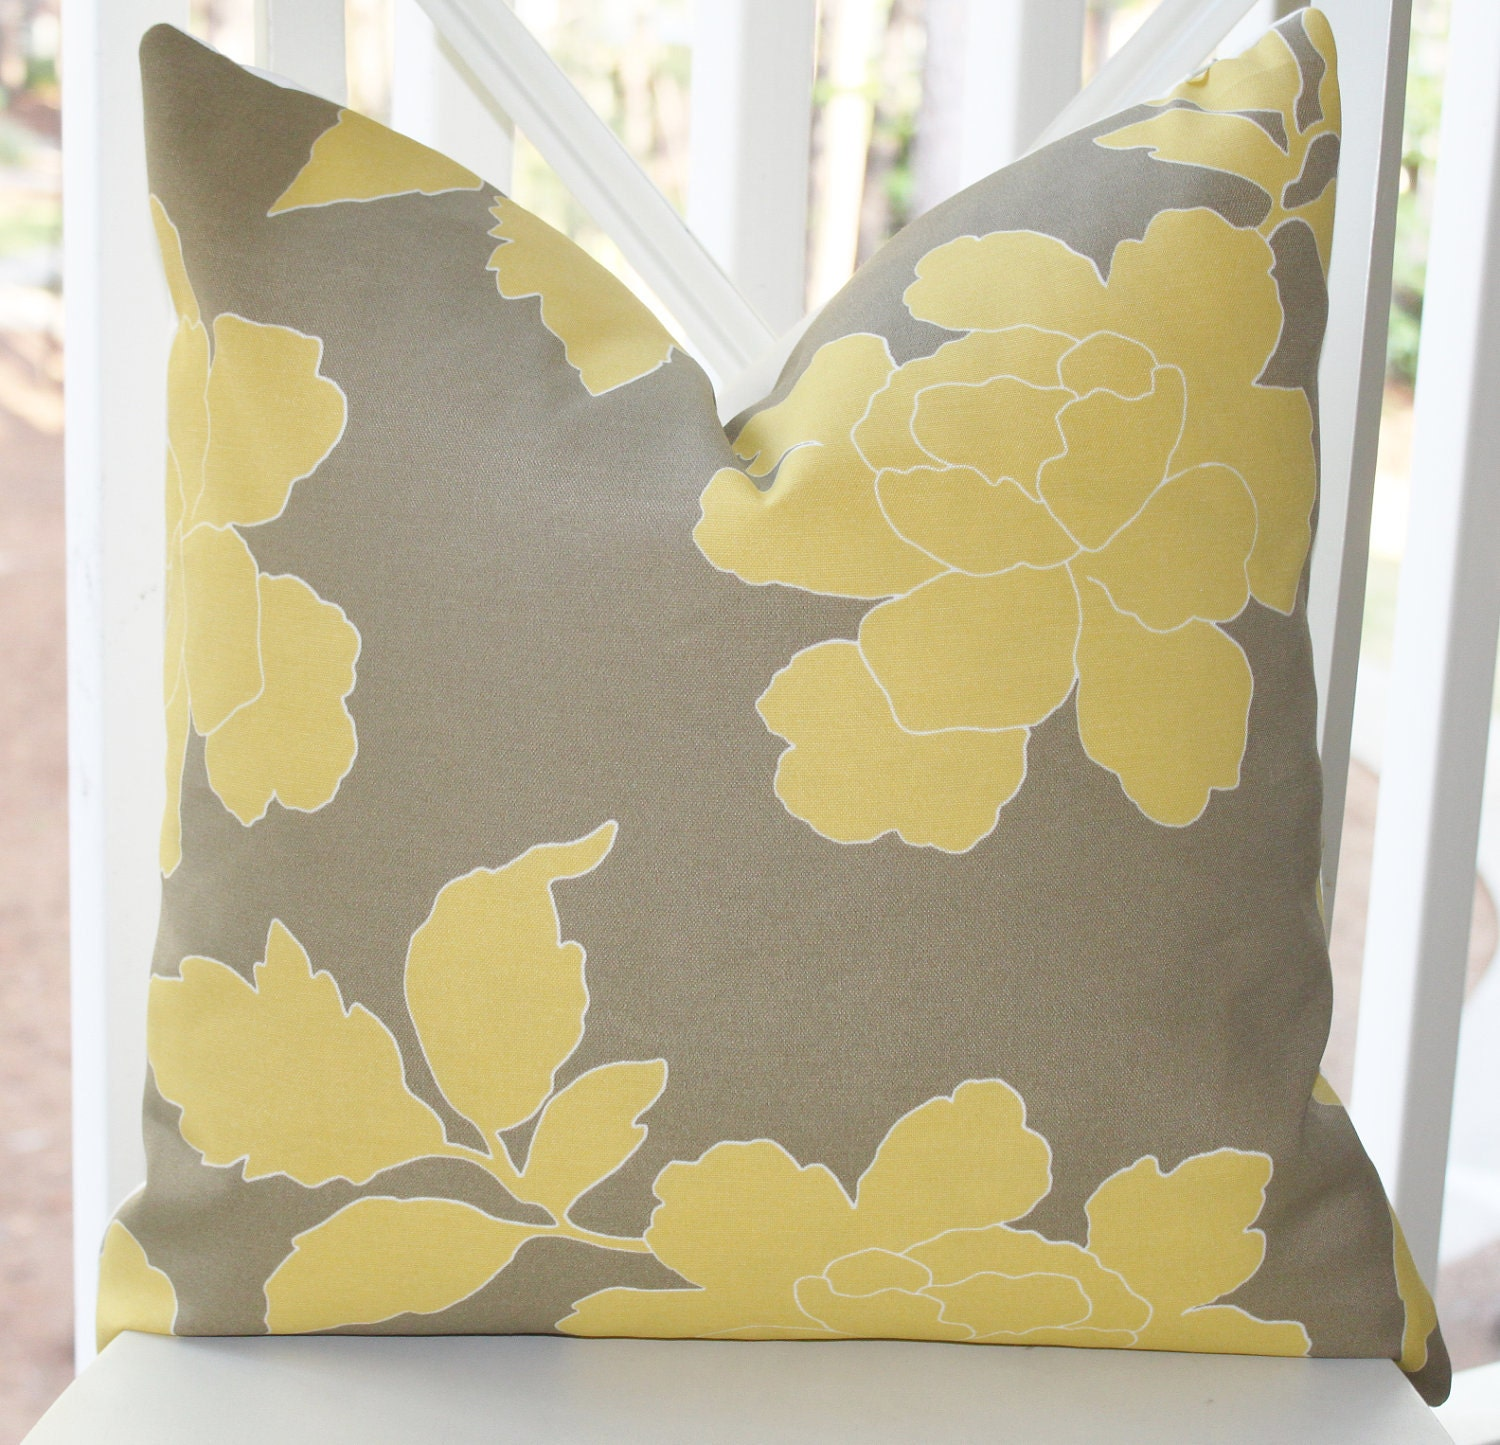 Throw Pillows Groupon : Decorative Pillow Cover Yellow Grey Dwell Studio Pillow Cover